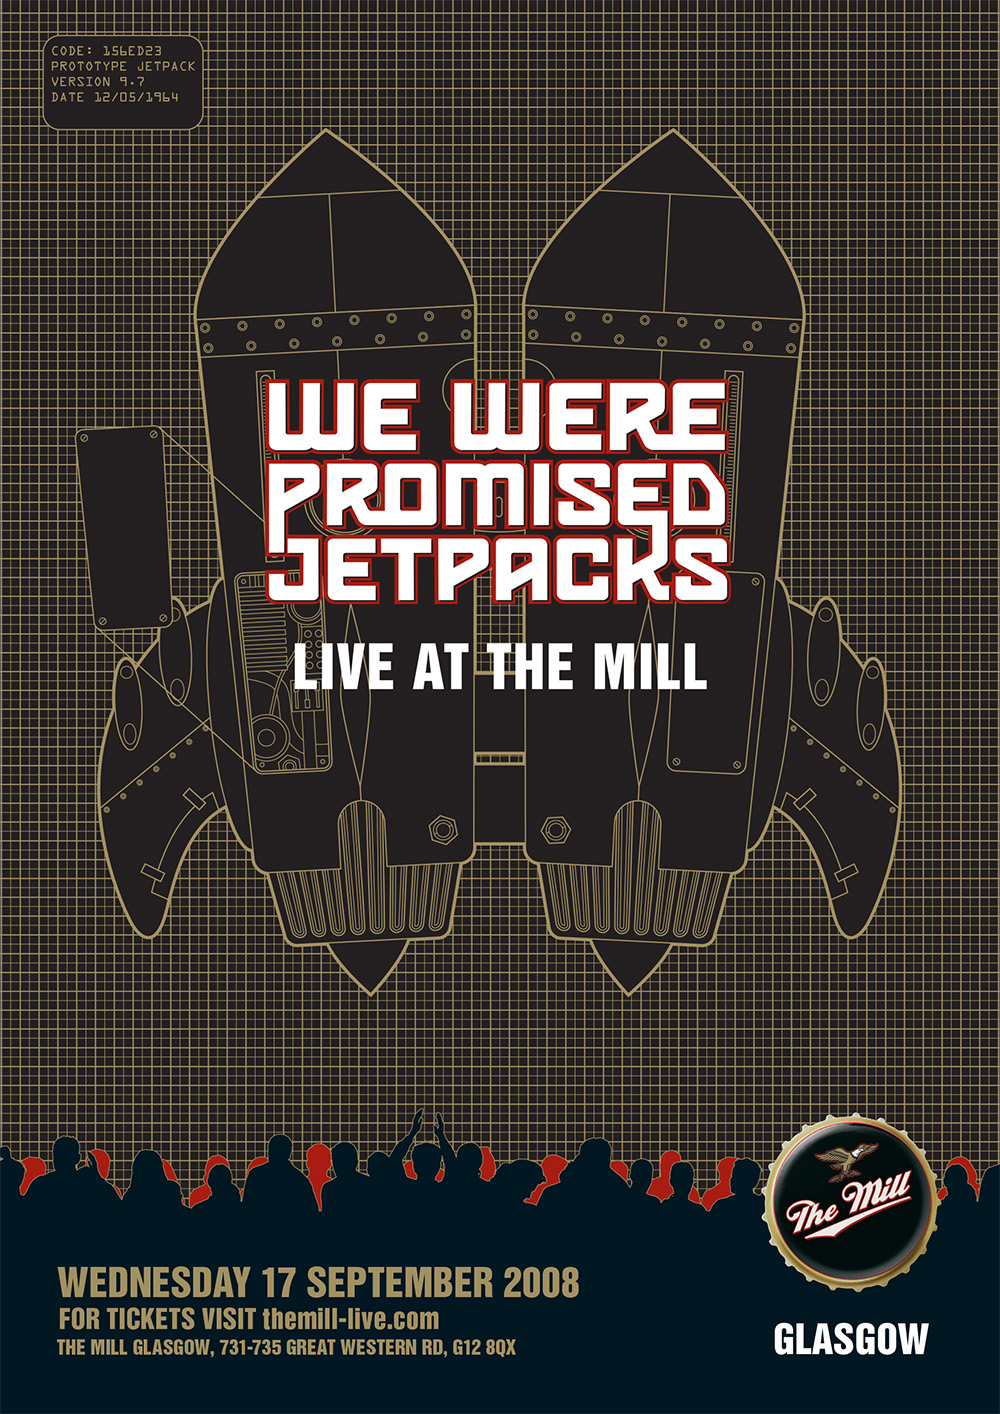 We were promised jetpacks v2 copy.jpg